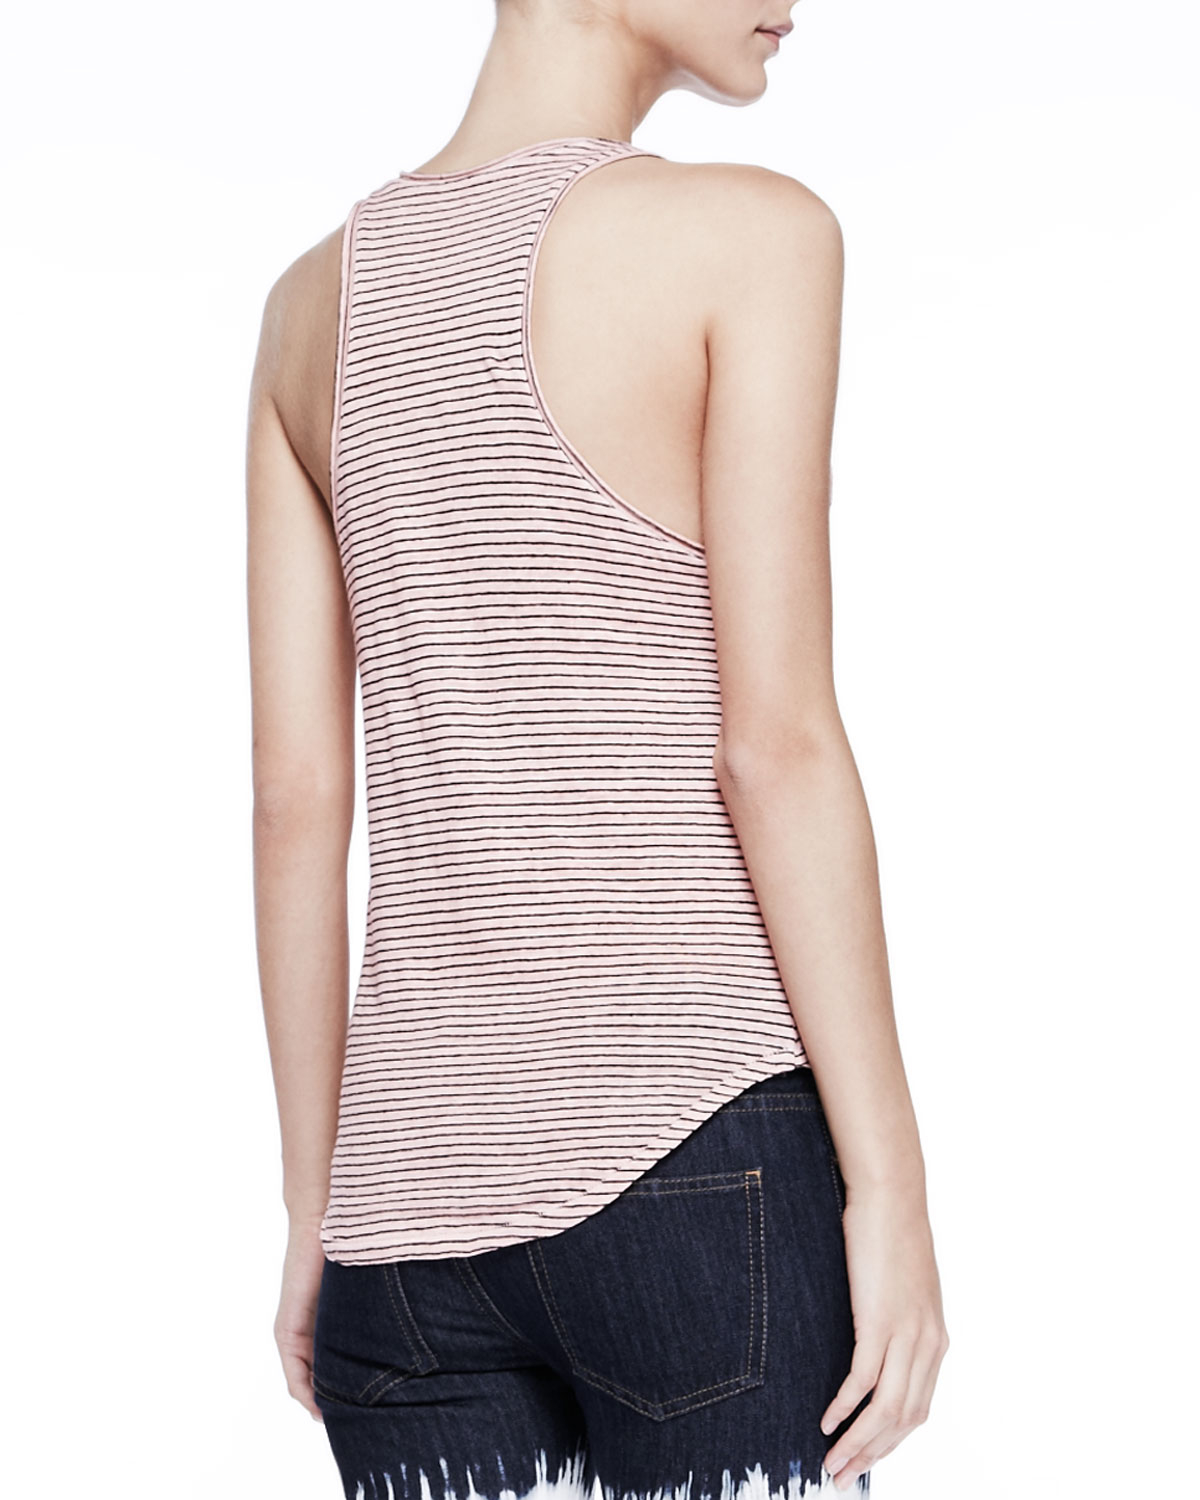 Cheap Online Sale Real striped sleeveless top - Pink & Purple Isabel Marant Marketable For Sale Cheap The Cheapest Clearance New Styles 0086fvv1